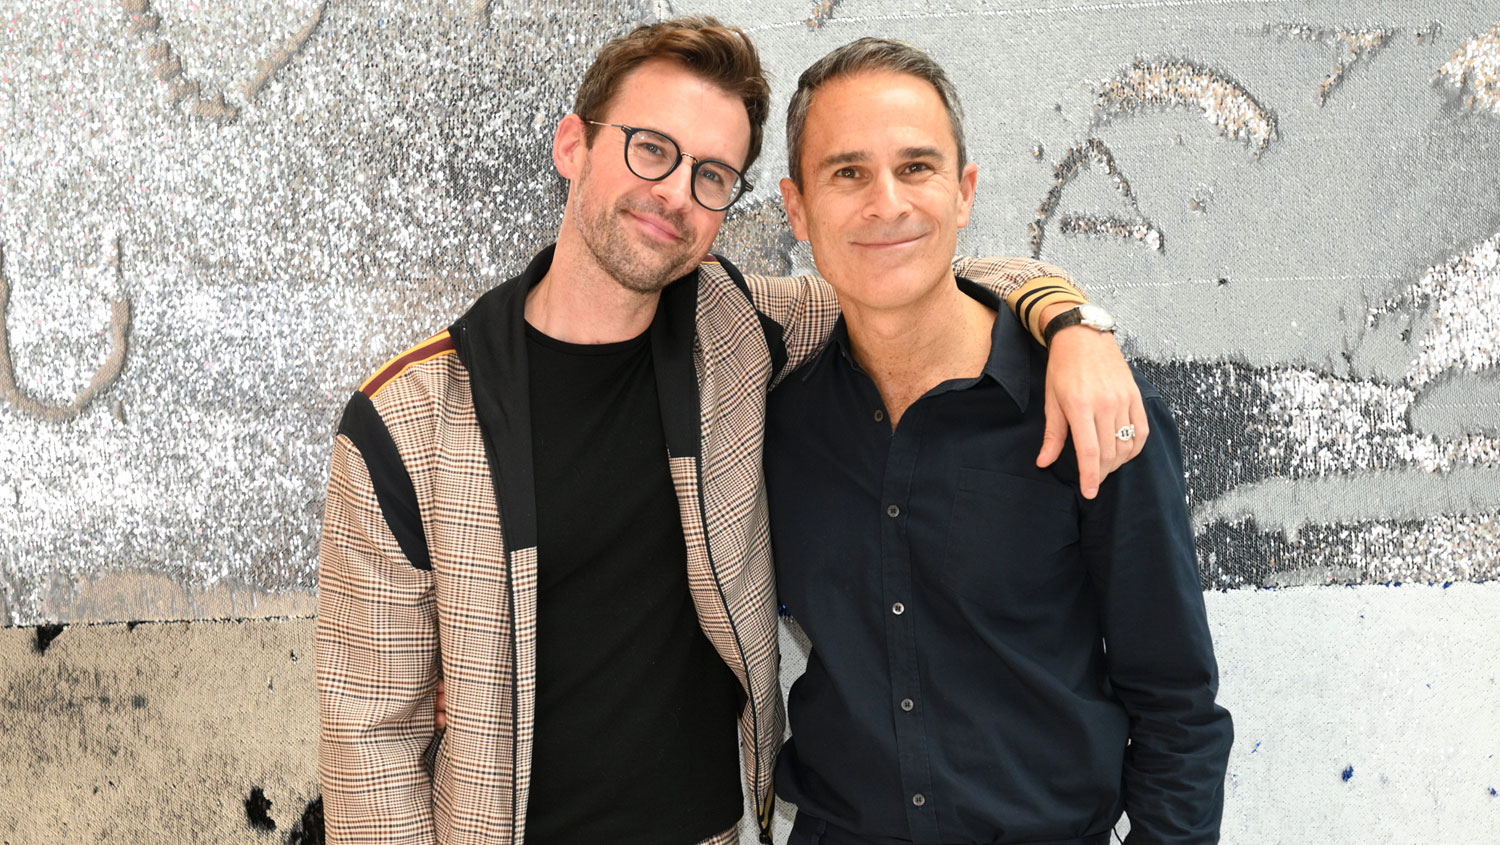 Brad Goreski Hosts Holiday Event with Husband Gary Janetti, Launches New Podcast!